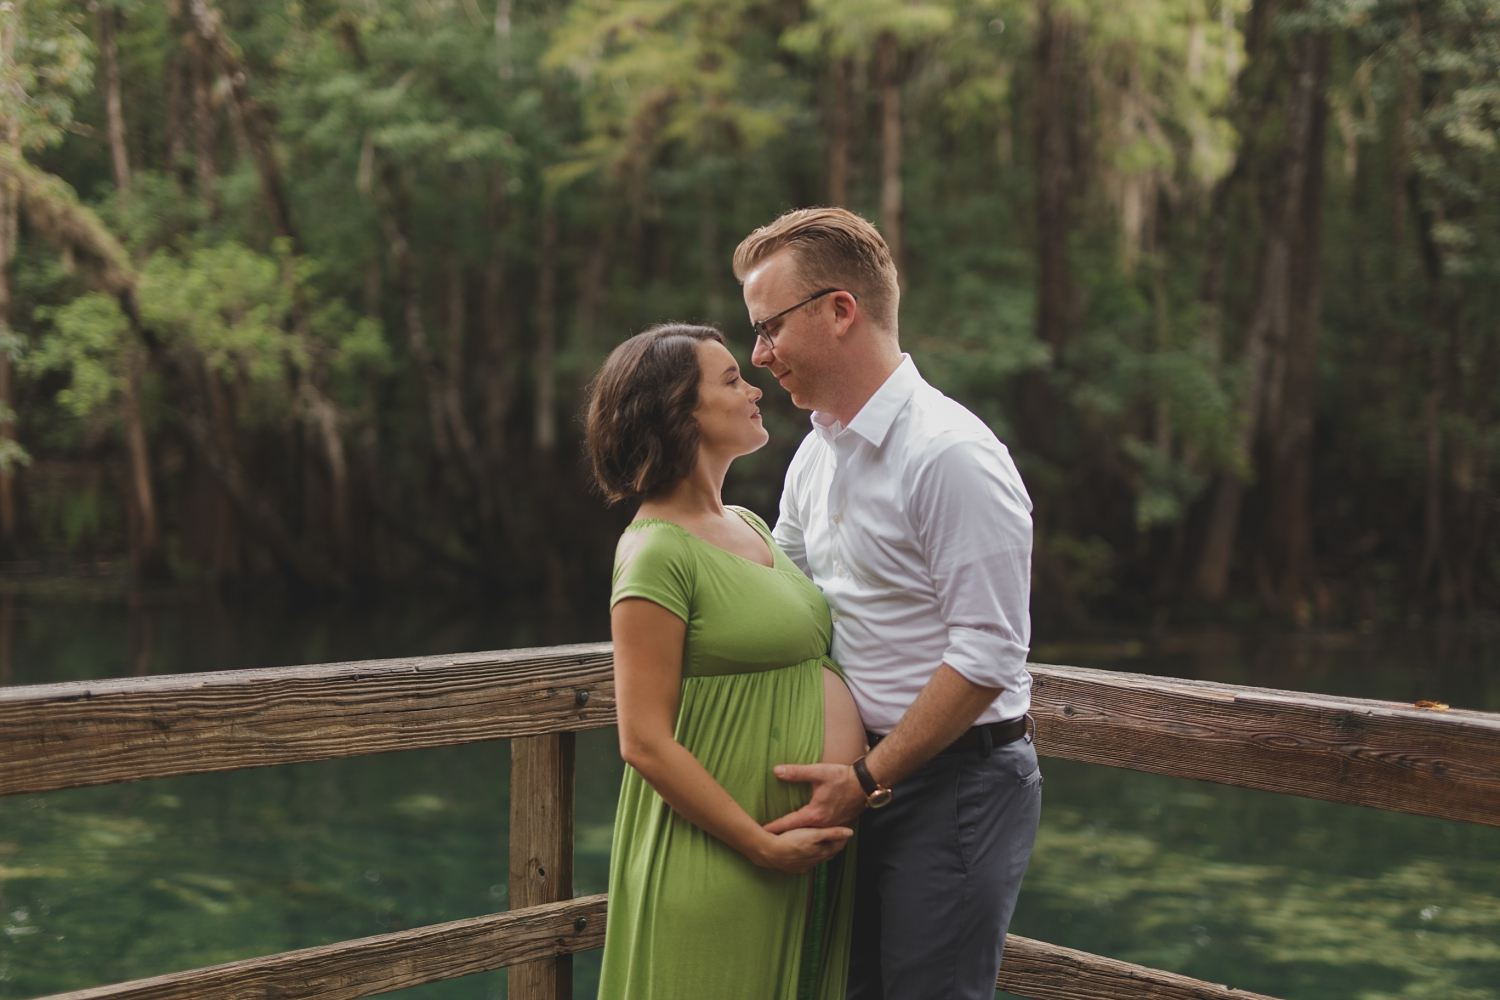 Stacy Paul Photography -  florida nature boho maternity photographer_0013.jpg